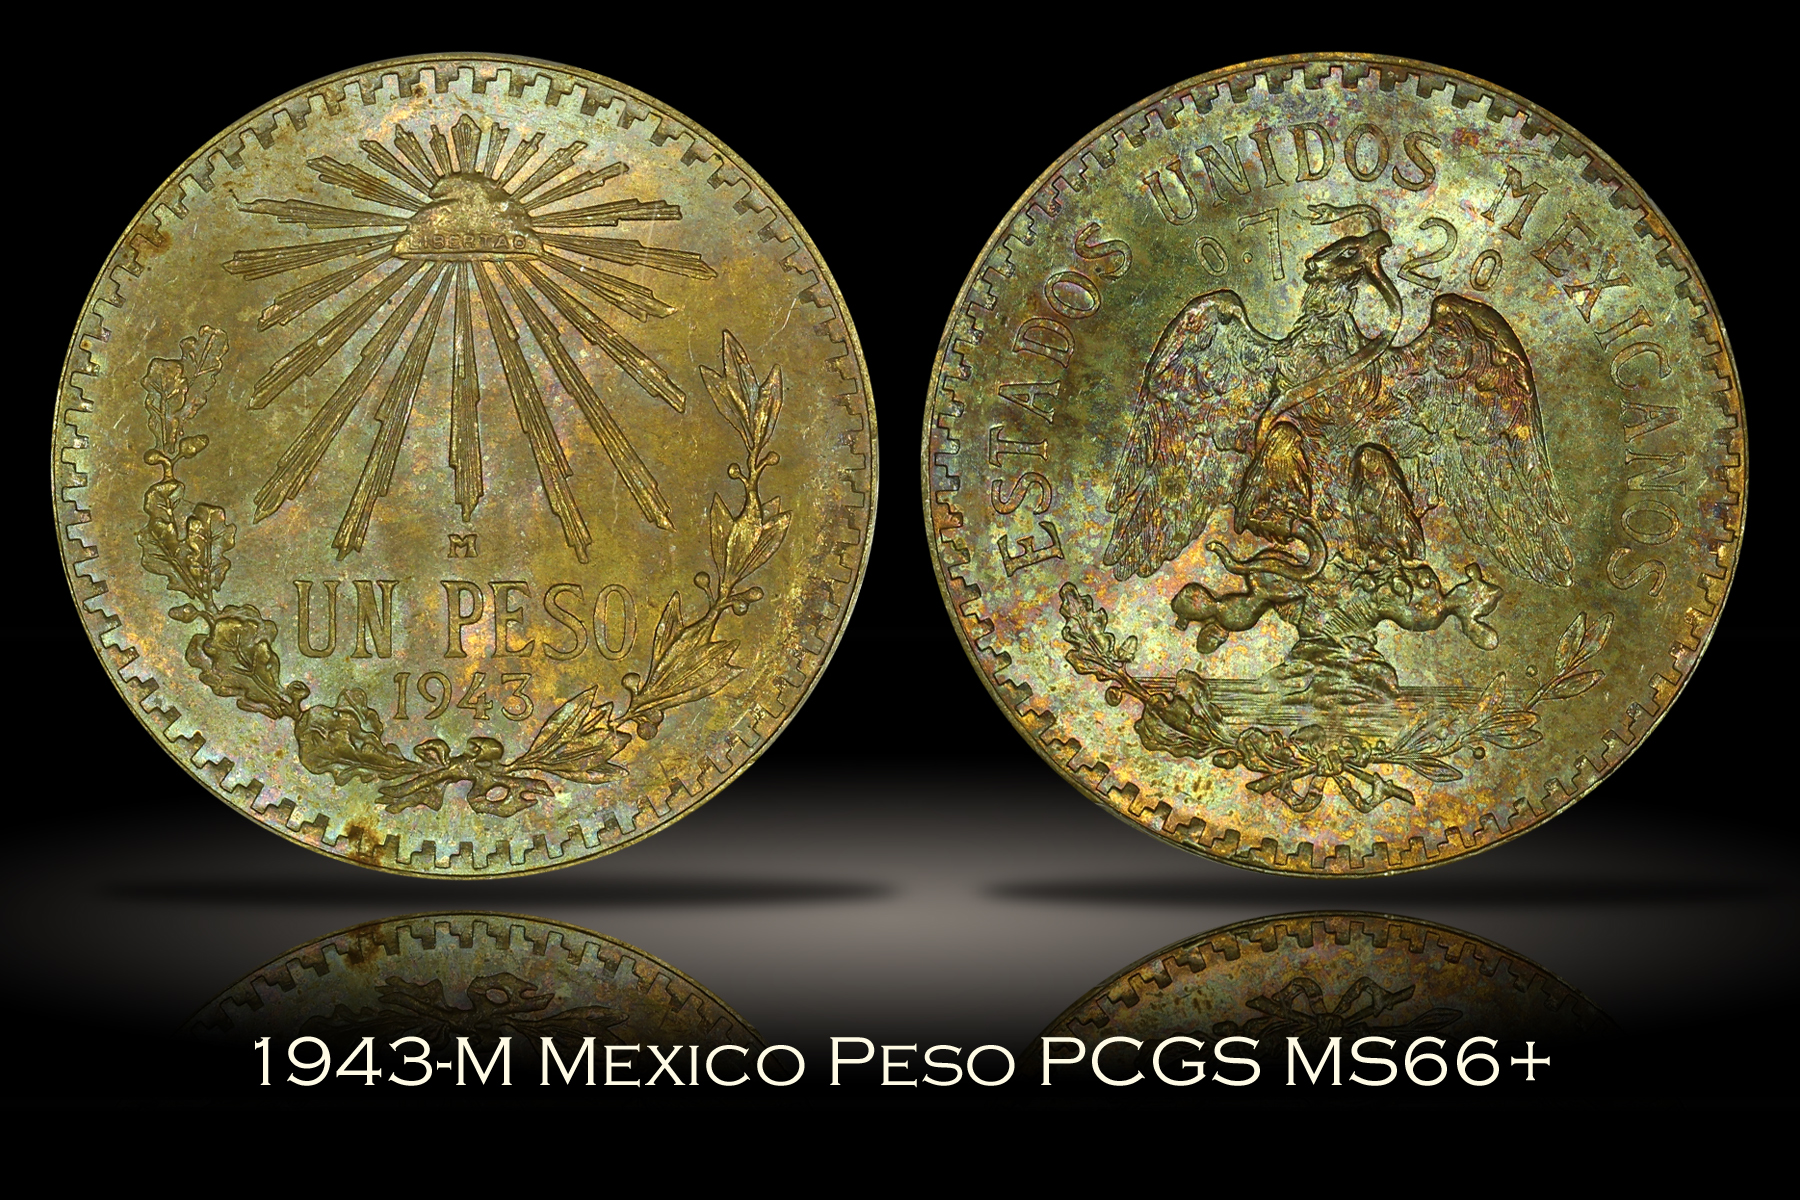 1943-M Mexico Peso PCGS MS66+